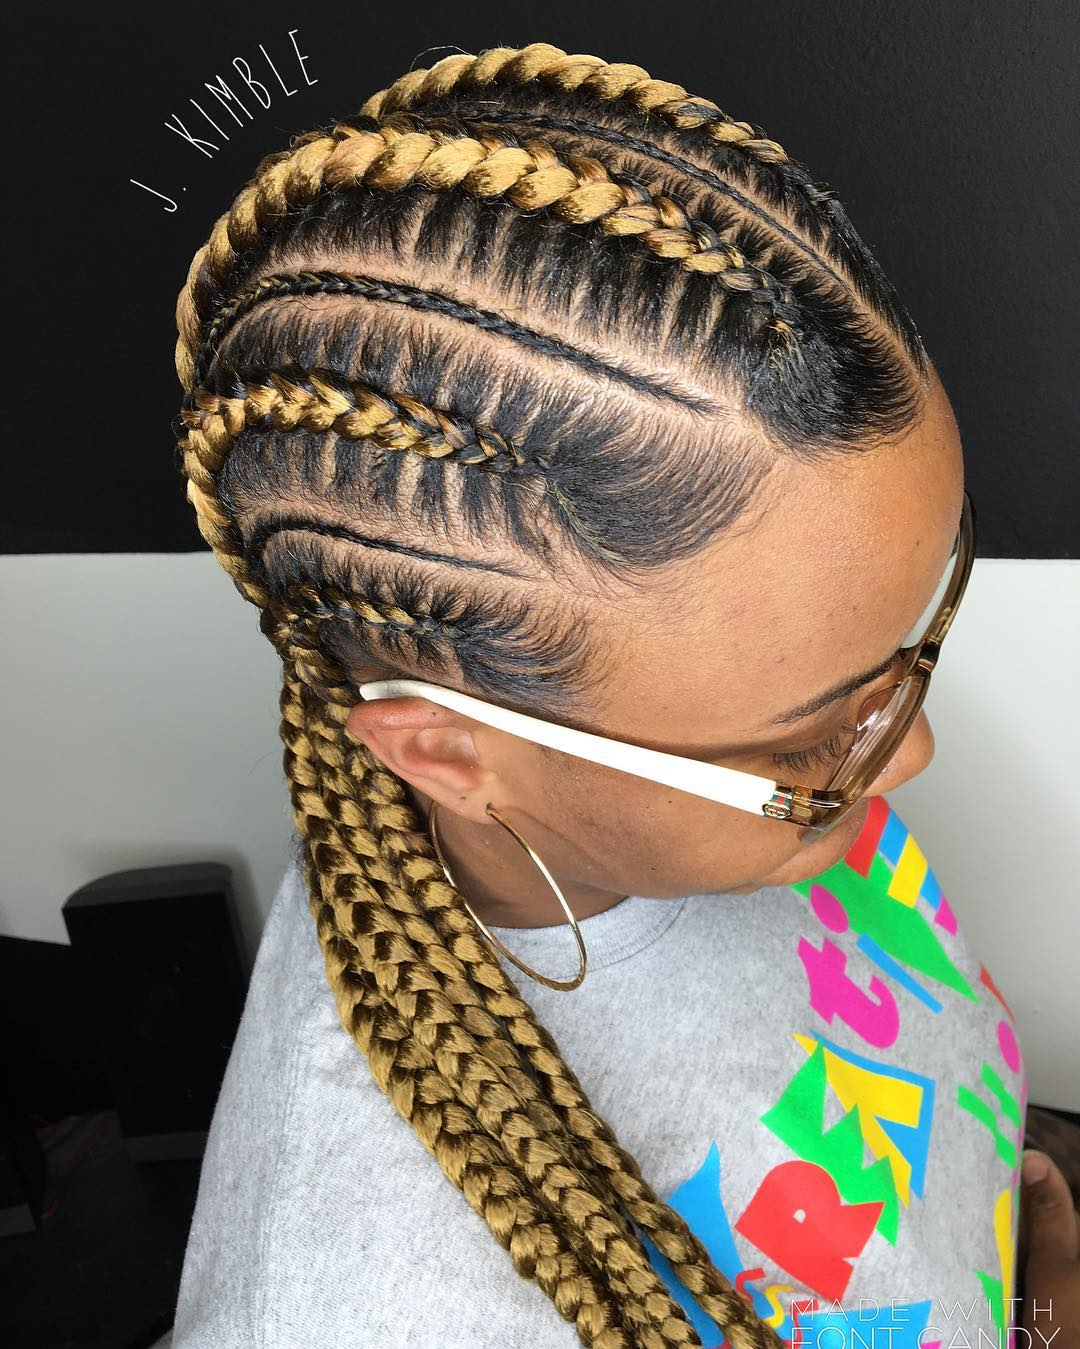 Astonishing 70 Best Black Braided Hairstyles That Turn Heads In 2017 Hairstyles For Women Draintrainus